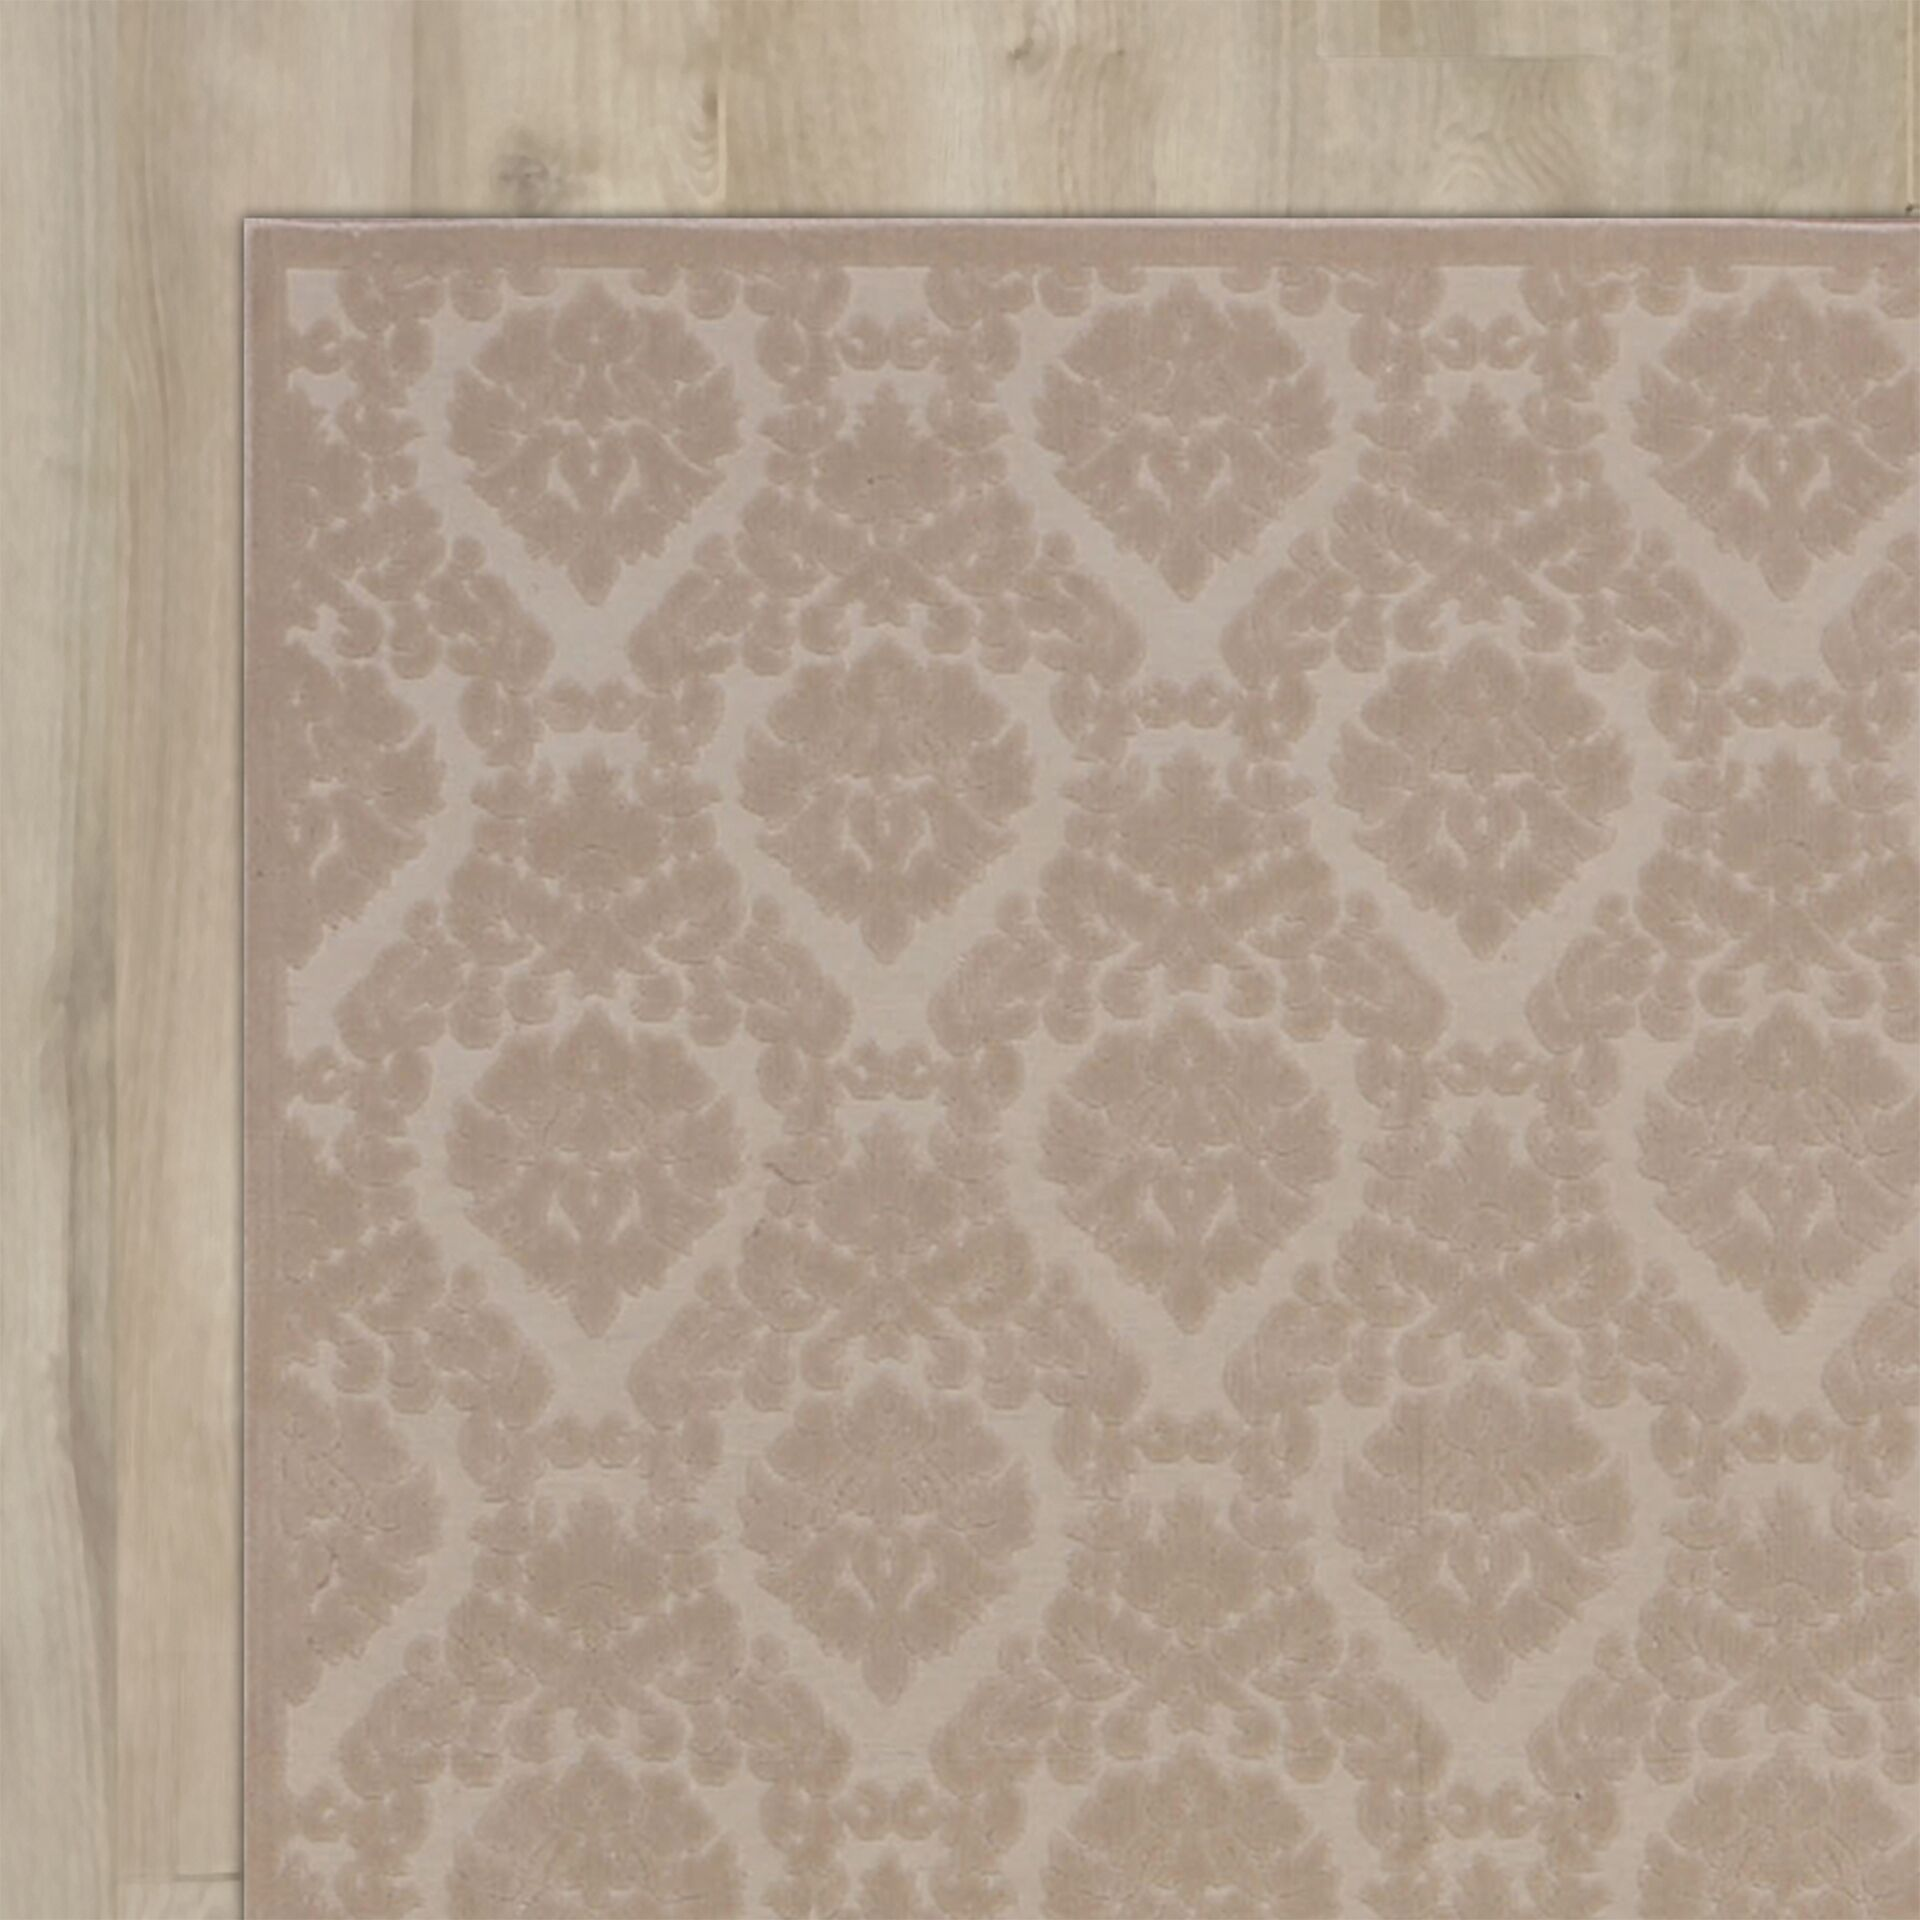 Weissport Ivory/Sand Area Rug Rug Size: Rectangle 7'9